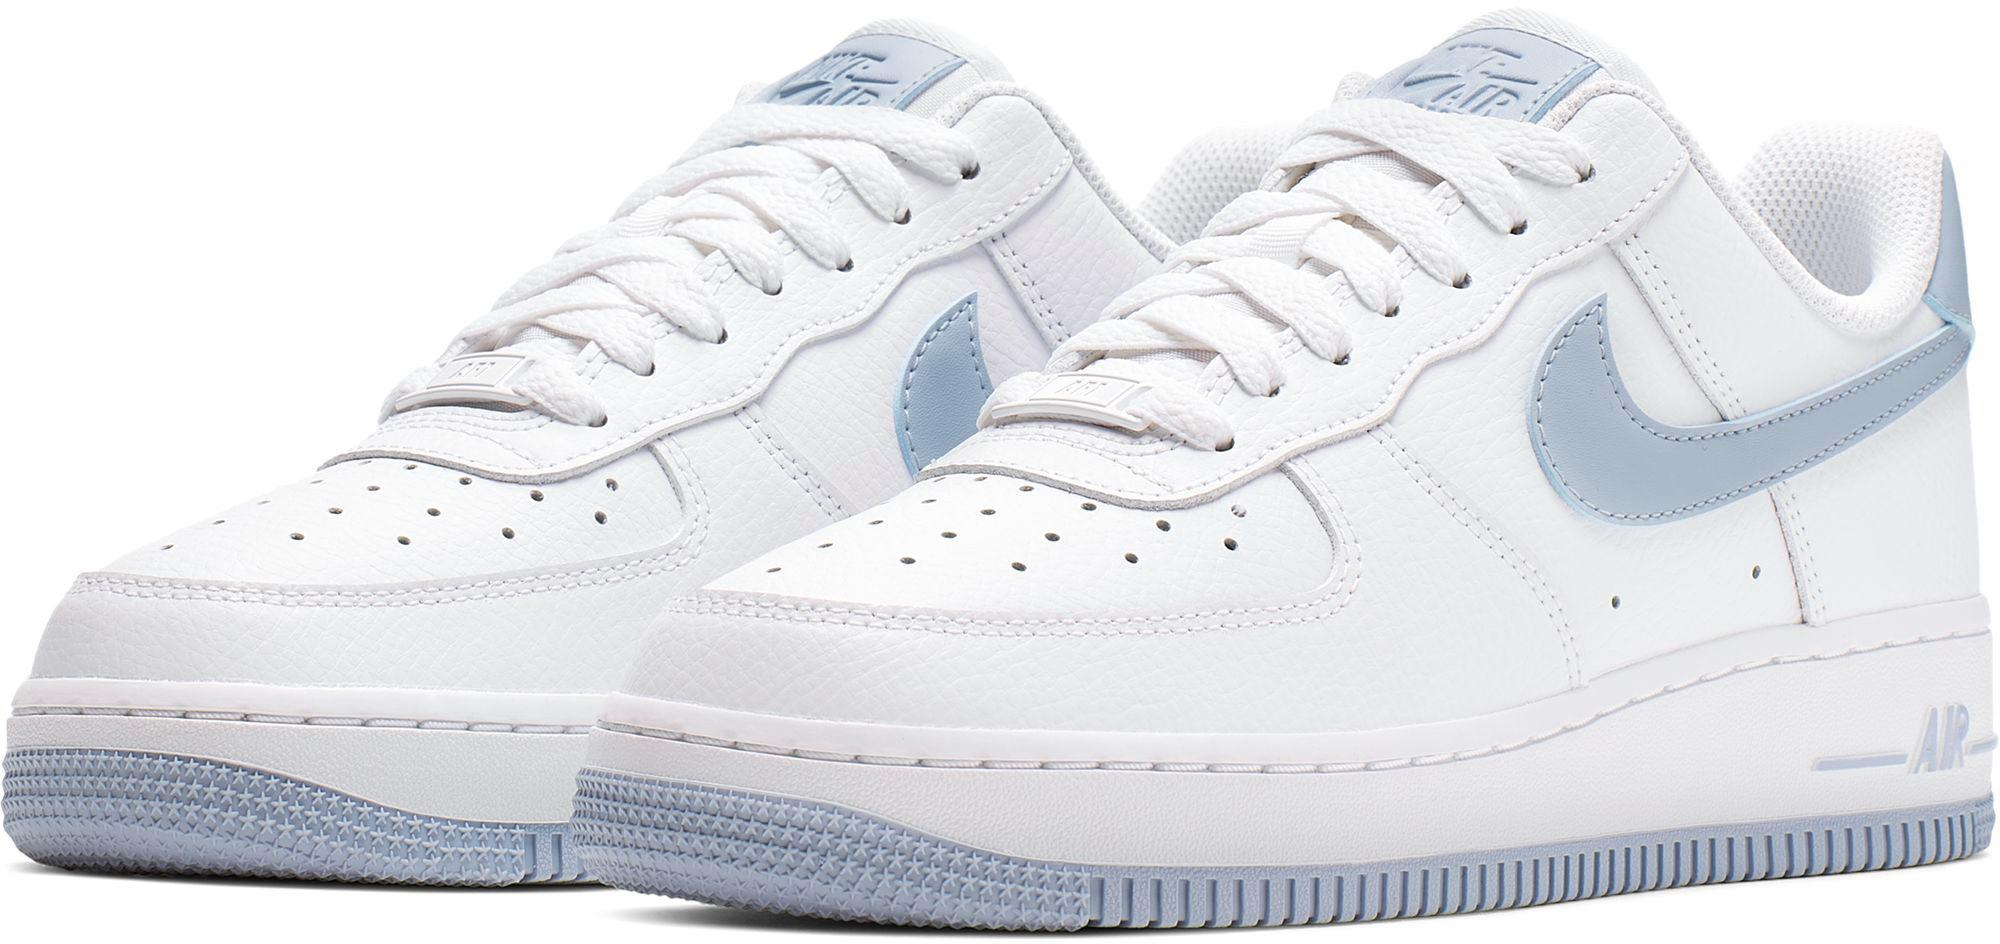 Nike Air Force 1 ´07 Sneaker Damen white lt armory blue im ...